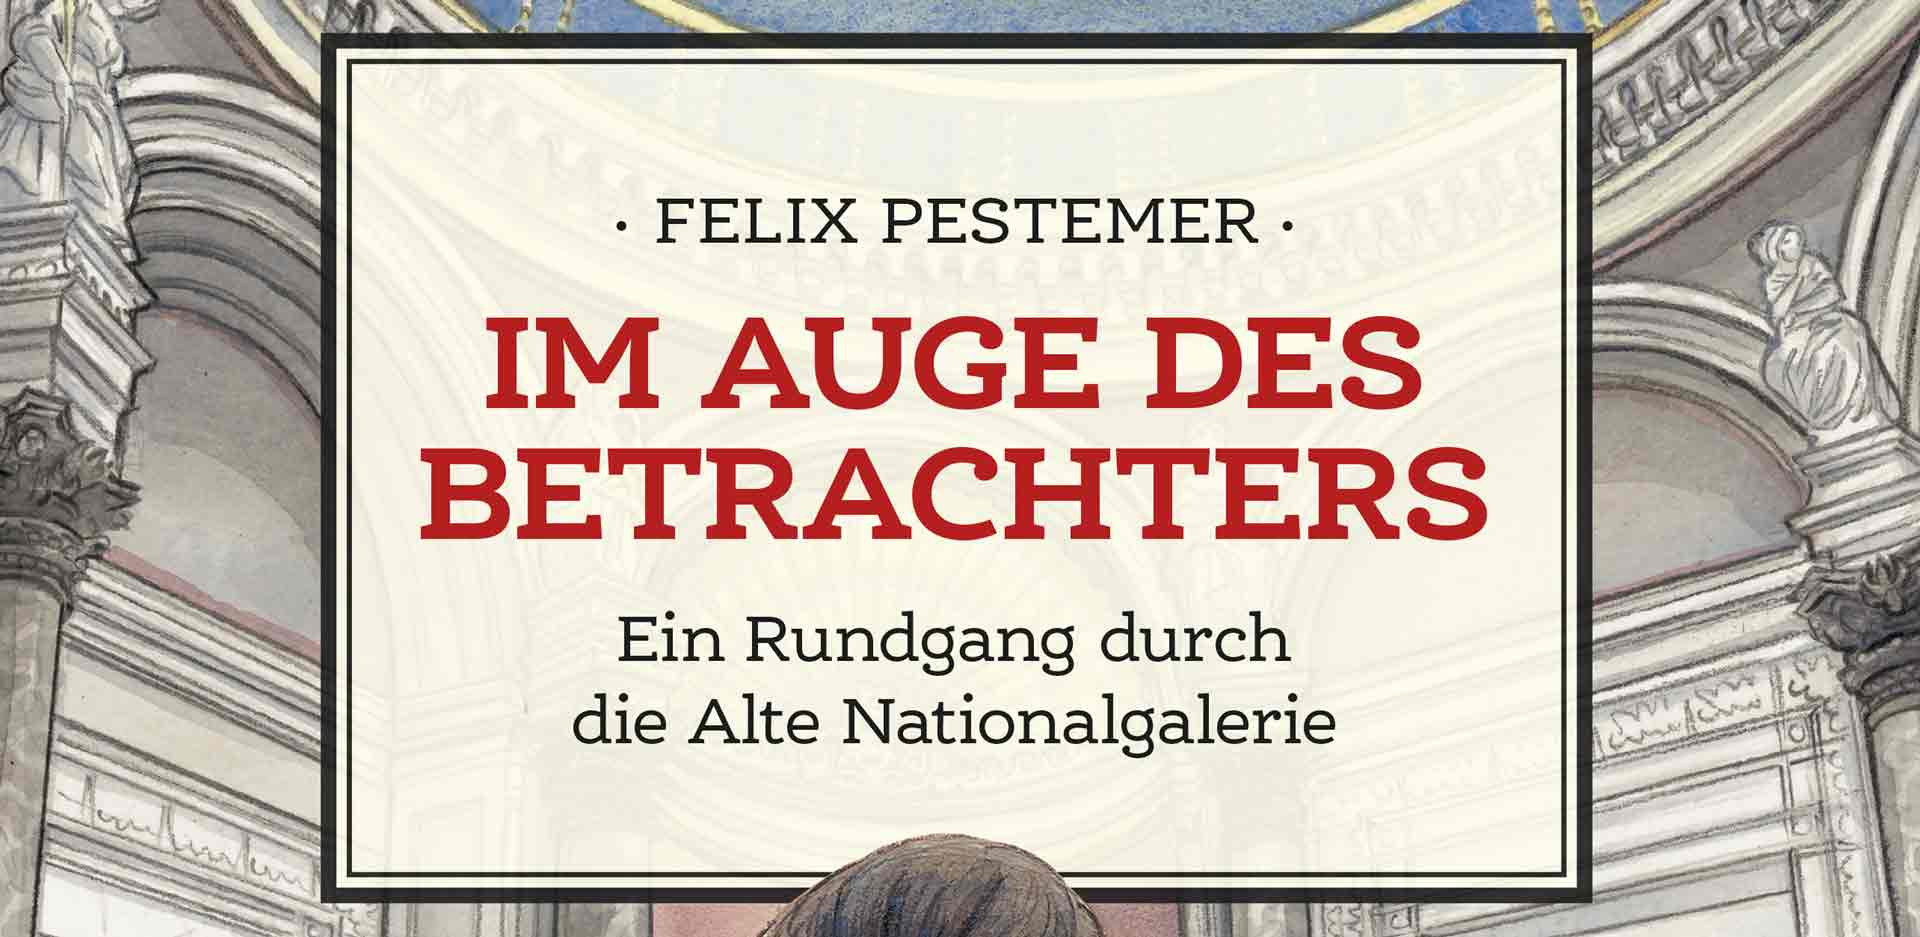 Cover of the Graphic Novel 'Im Auge des Betrachters. Ein Rundgang durch die Alte Nationalgalerie' (In the Eye of the Beholder. A Tour around the Alte Nationalgalerie)